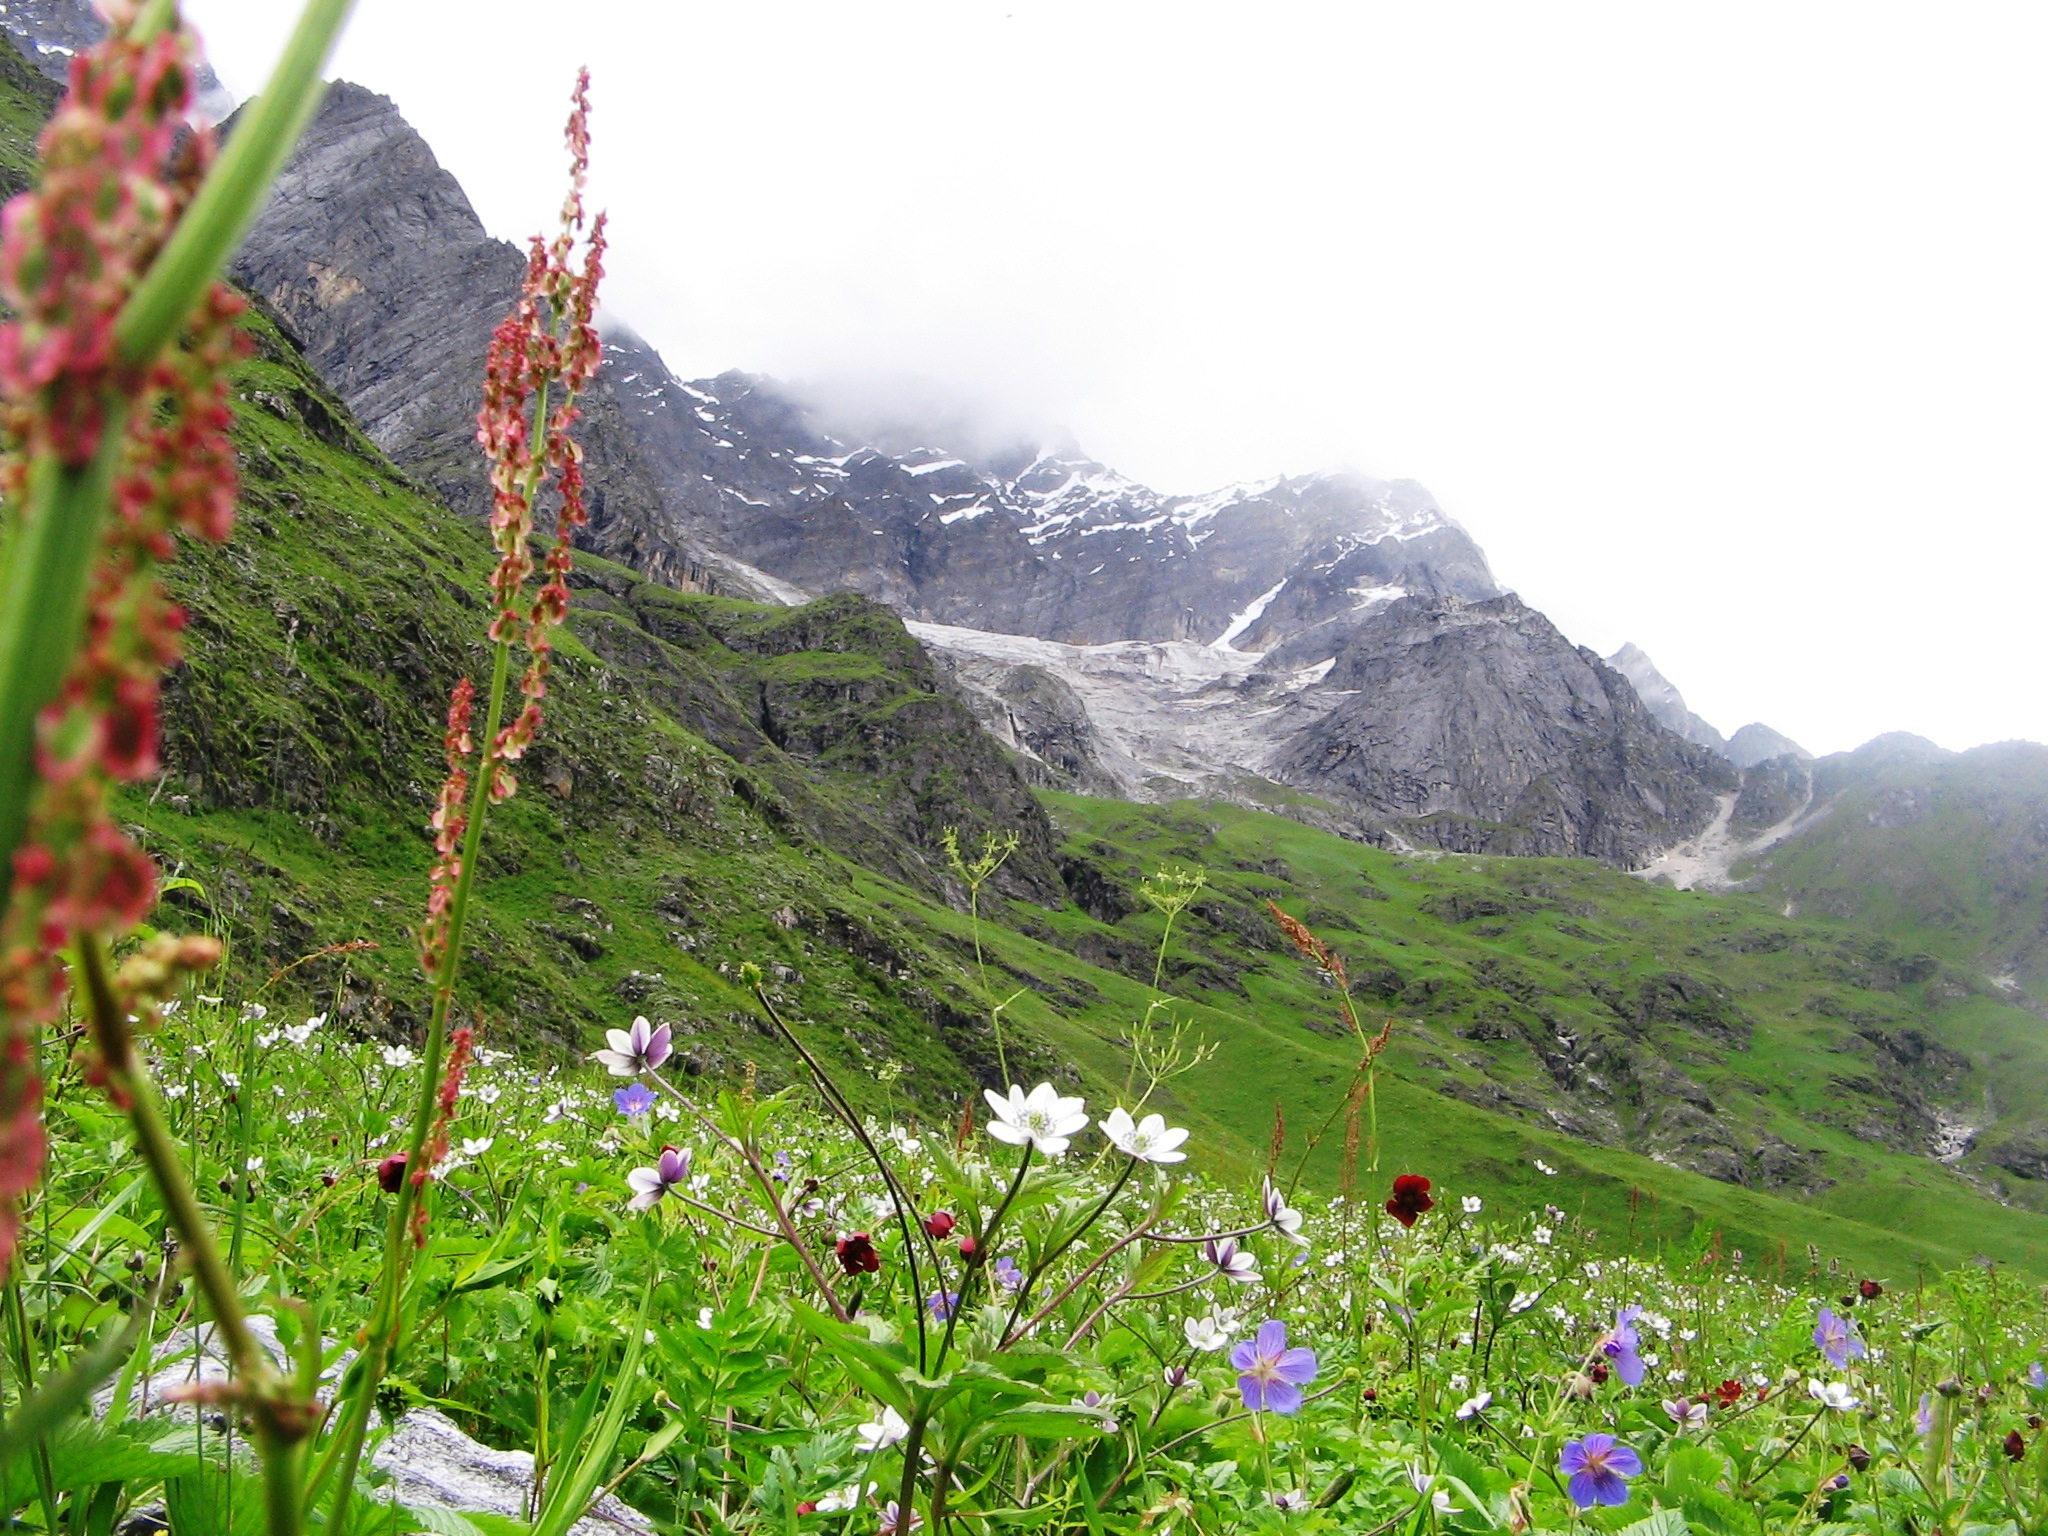 The Valley of Flowers, Himalaya, India. Photo by Dr. Rajeshwari Singh.